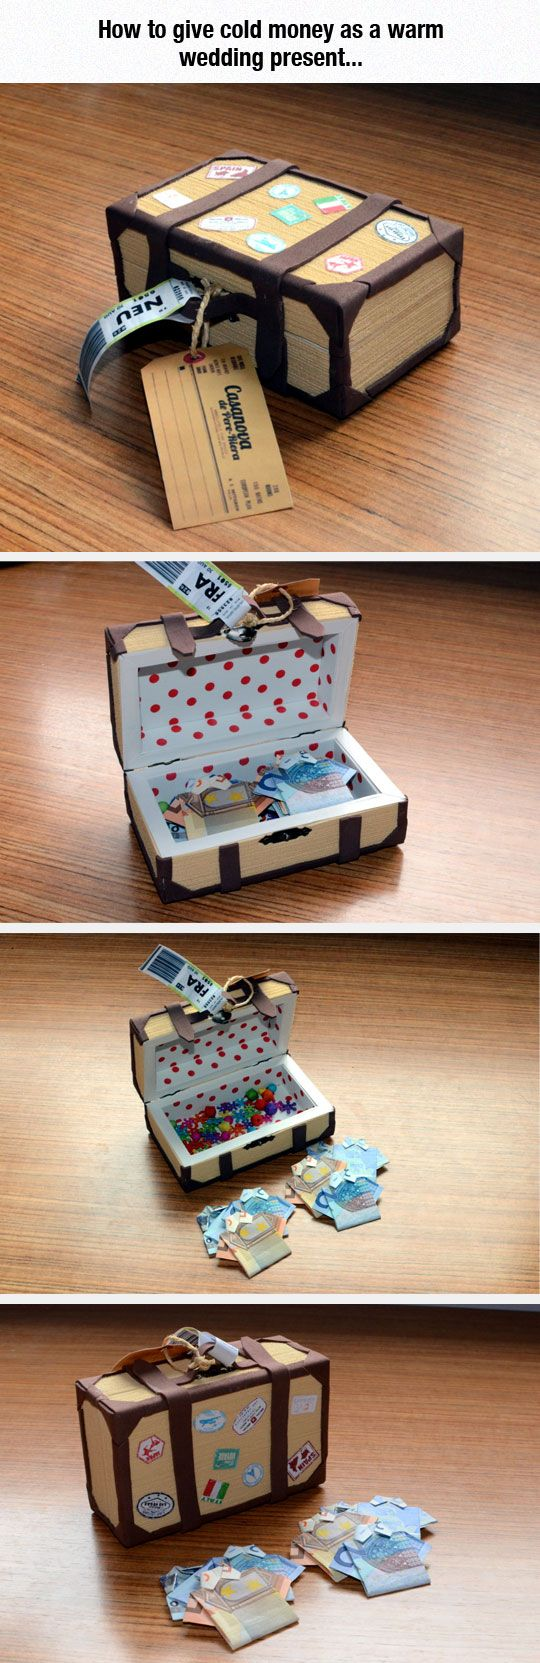 The Right Way to GIFT MONEY! Love the folded money Tees packed in a tiny handmade suitcase! Perfect retirement gift, wedding gift, Travel abroad gift, etc via I Waste So Much Time